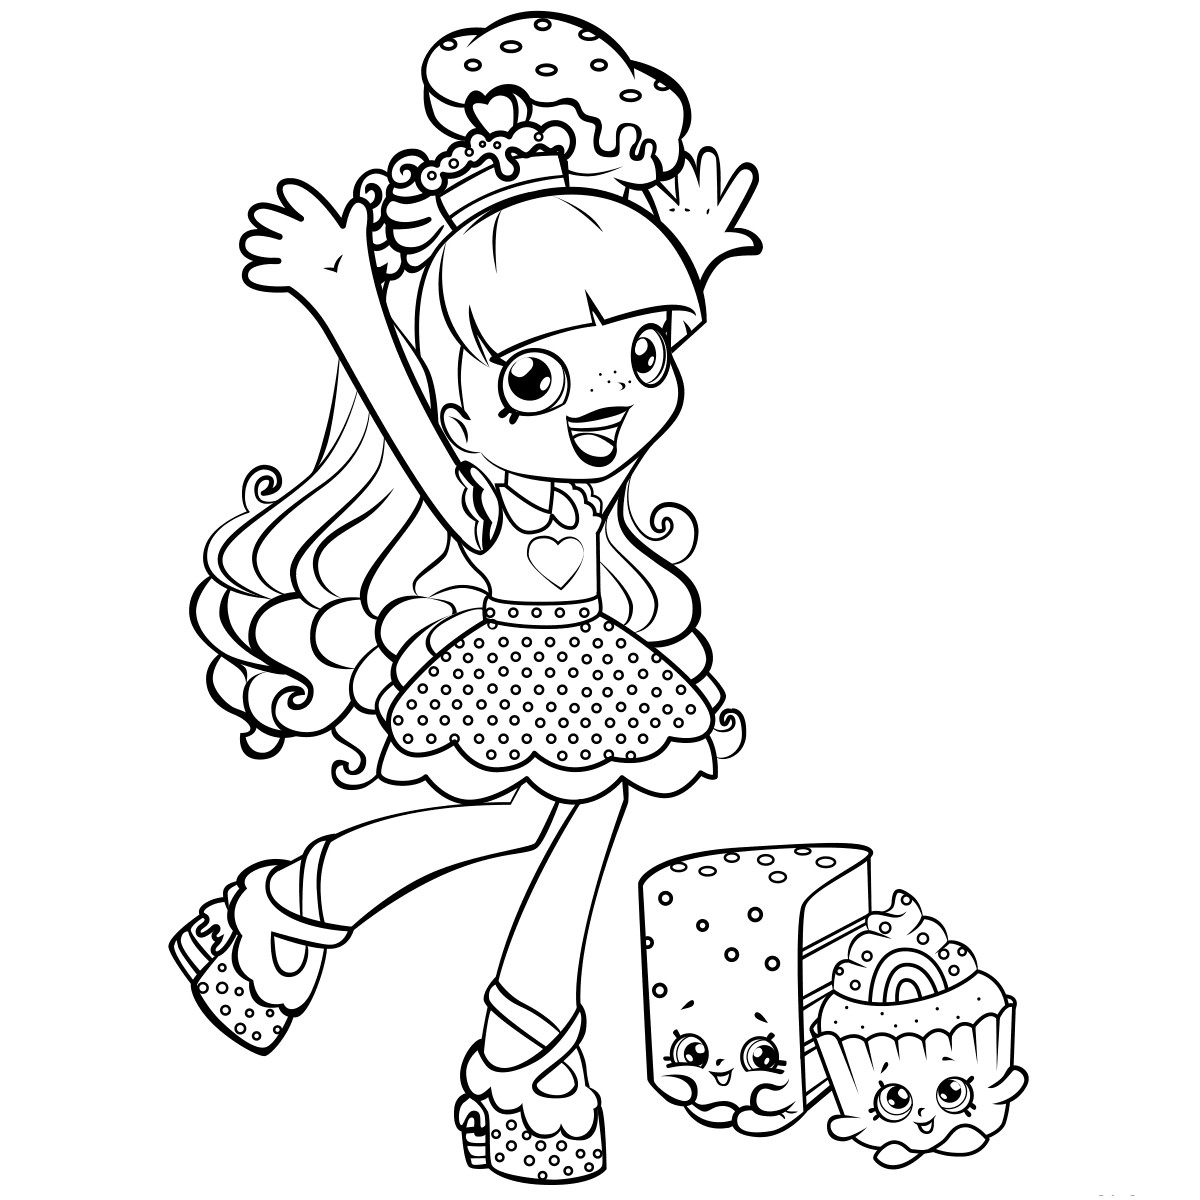 Coloring Sheets For Girls Shopkins  Shopkins Coloring Pages